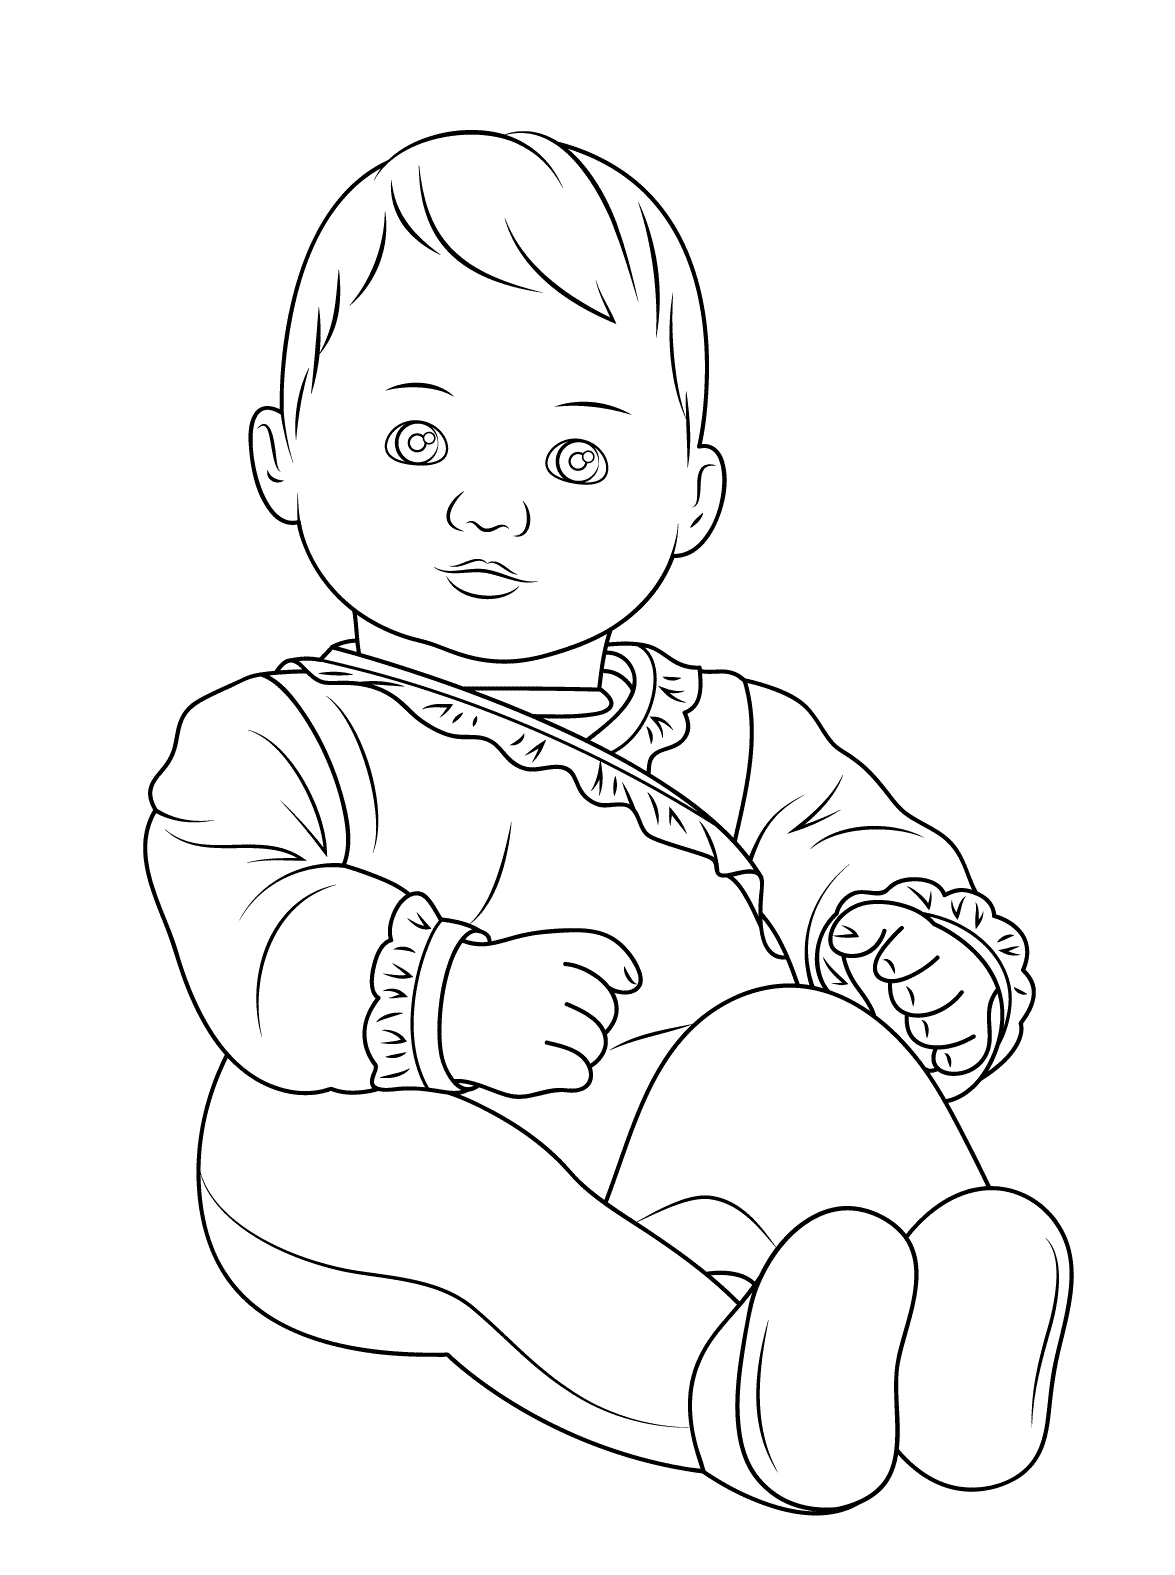 american girl coloring pages printable american girl doll coloring pages to download and print pages american girl printable coloring